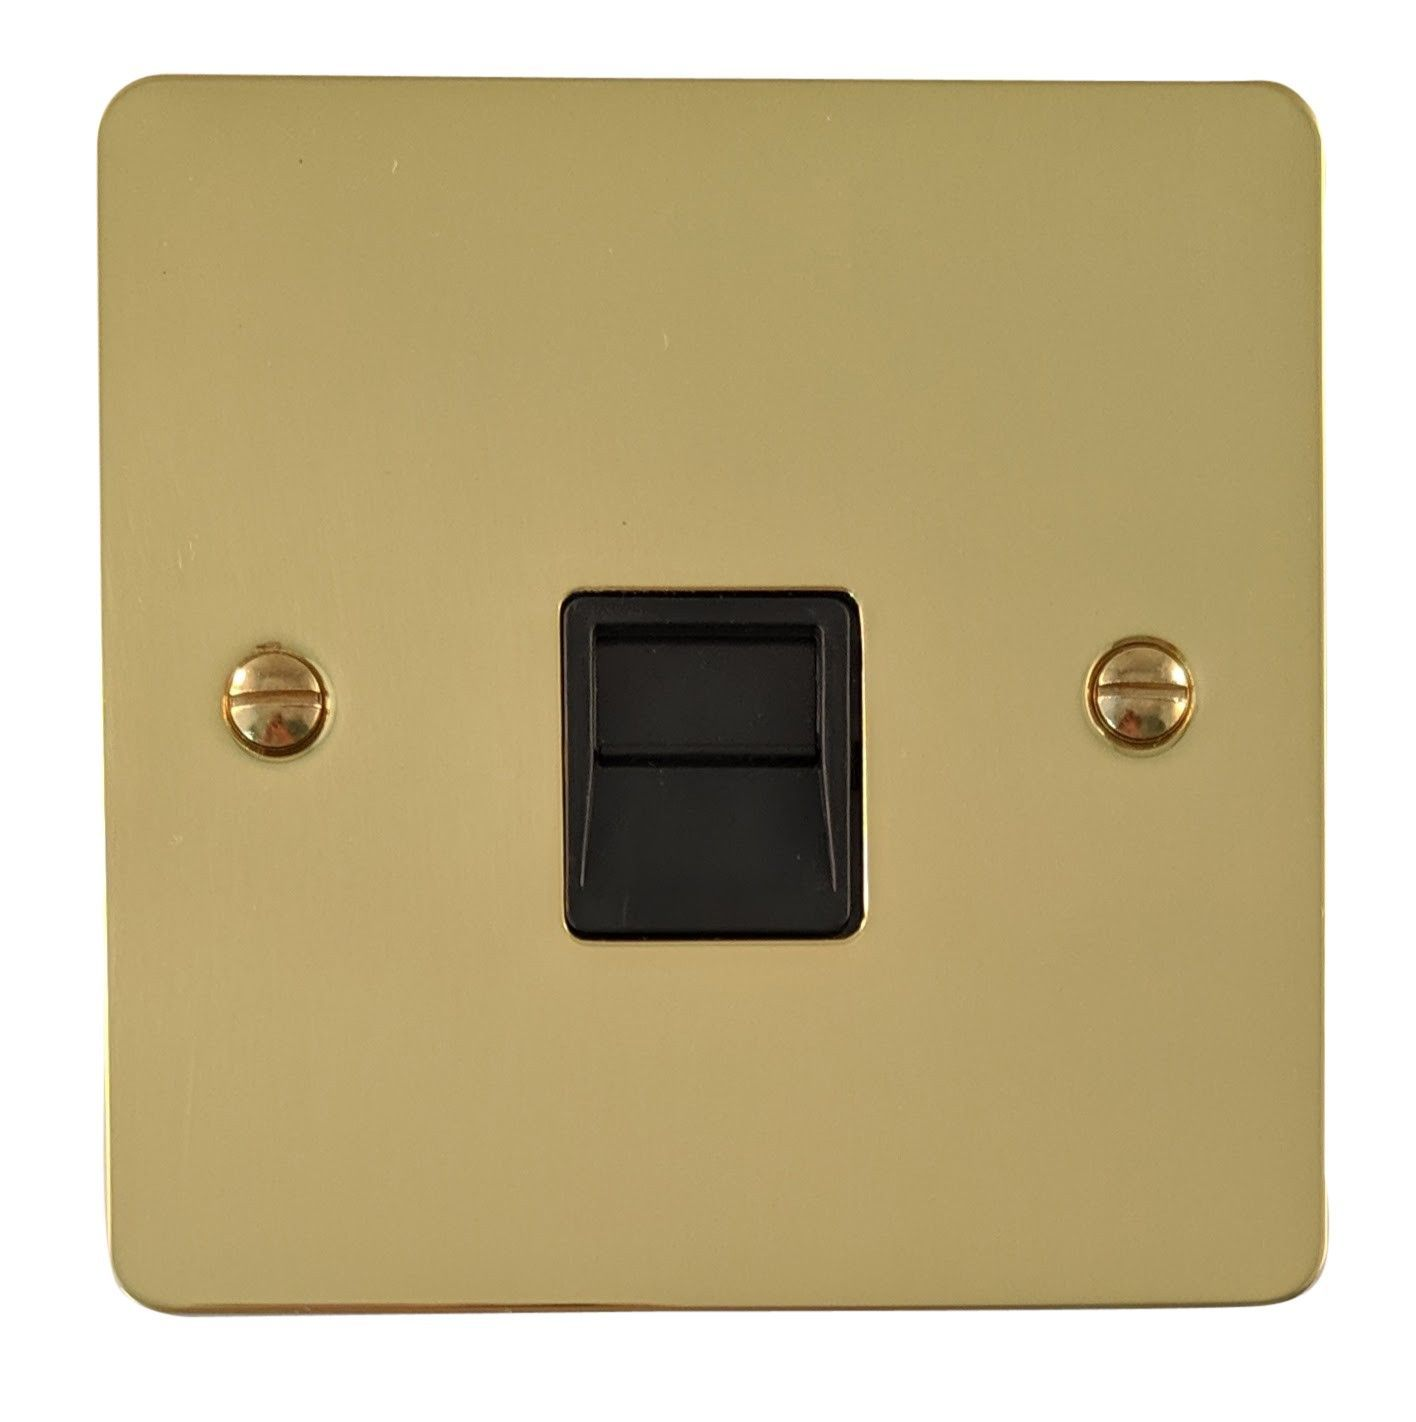 G&H FB33B Flat Plate Polished Brass 1 Gang Master BT Telephone Socket